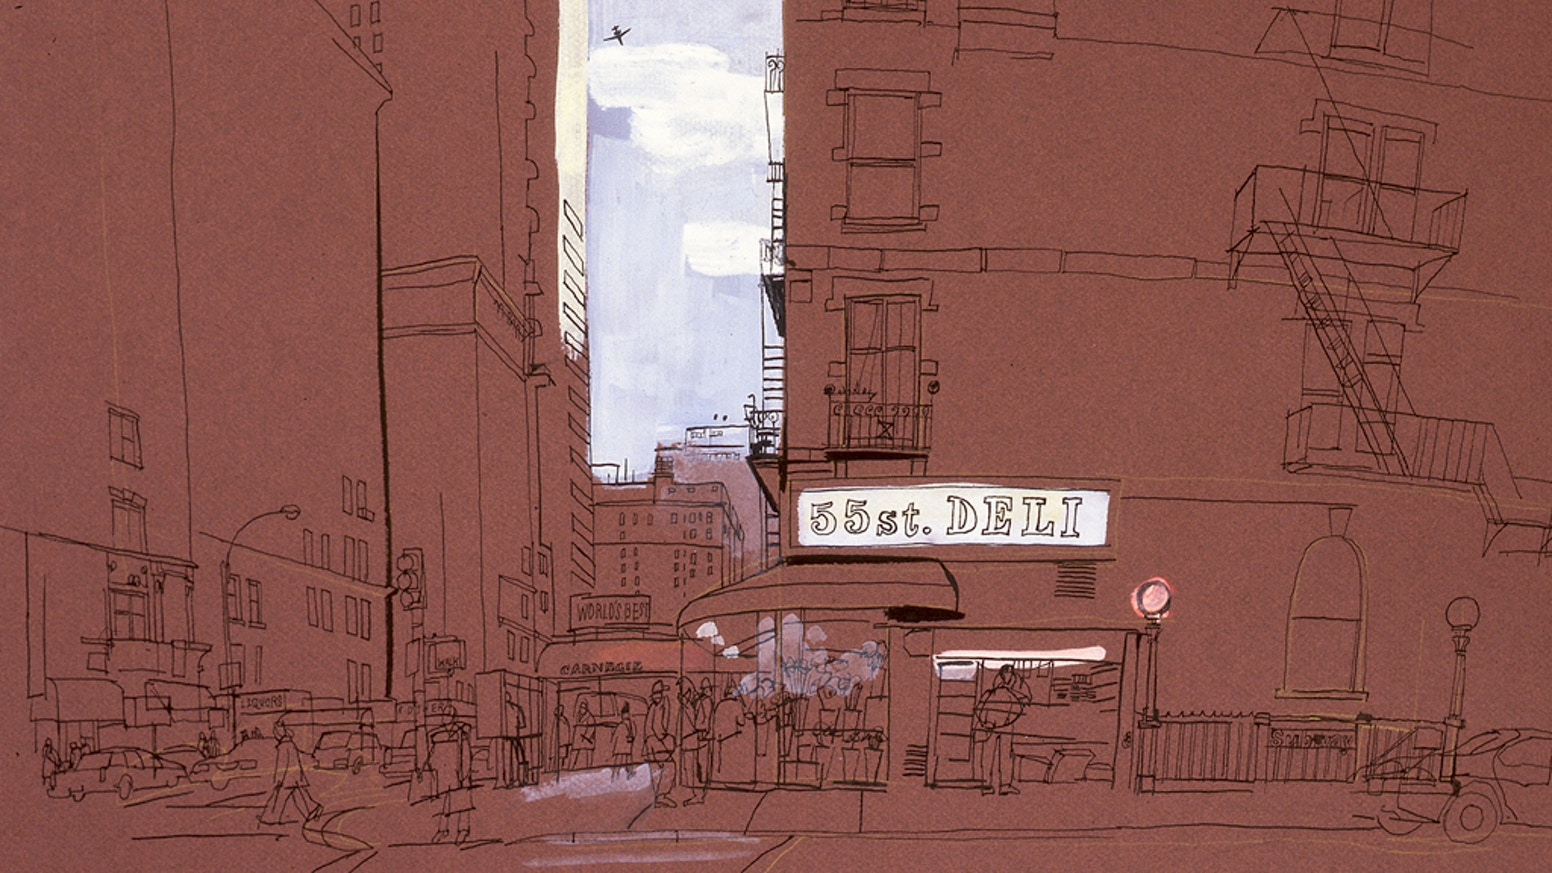 A book revealing NYC in 90 drawings over 30 years through the eyes of artist Lucinda Rogers was funded through Kickstarter on 5 July. It was finished at the end of November and delivery started in December. You can buy the book by clicking the link below.